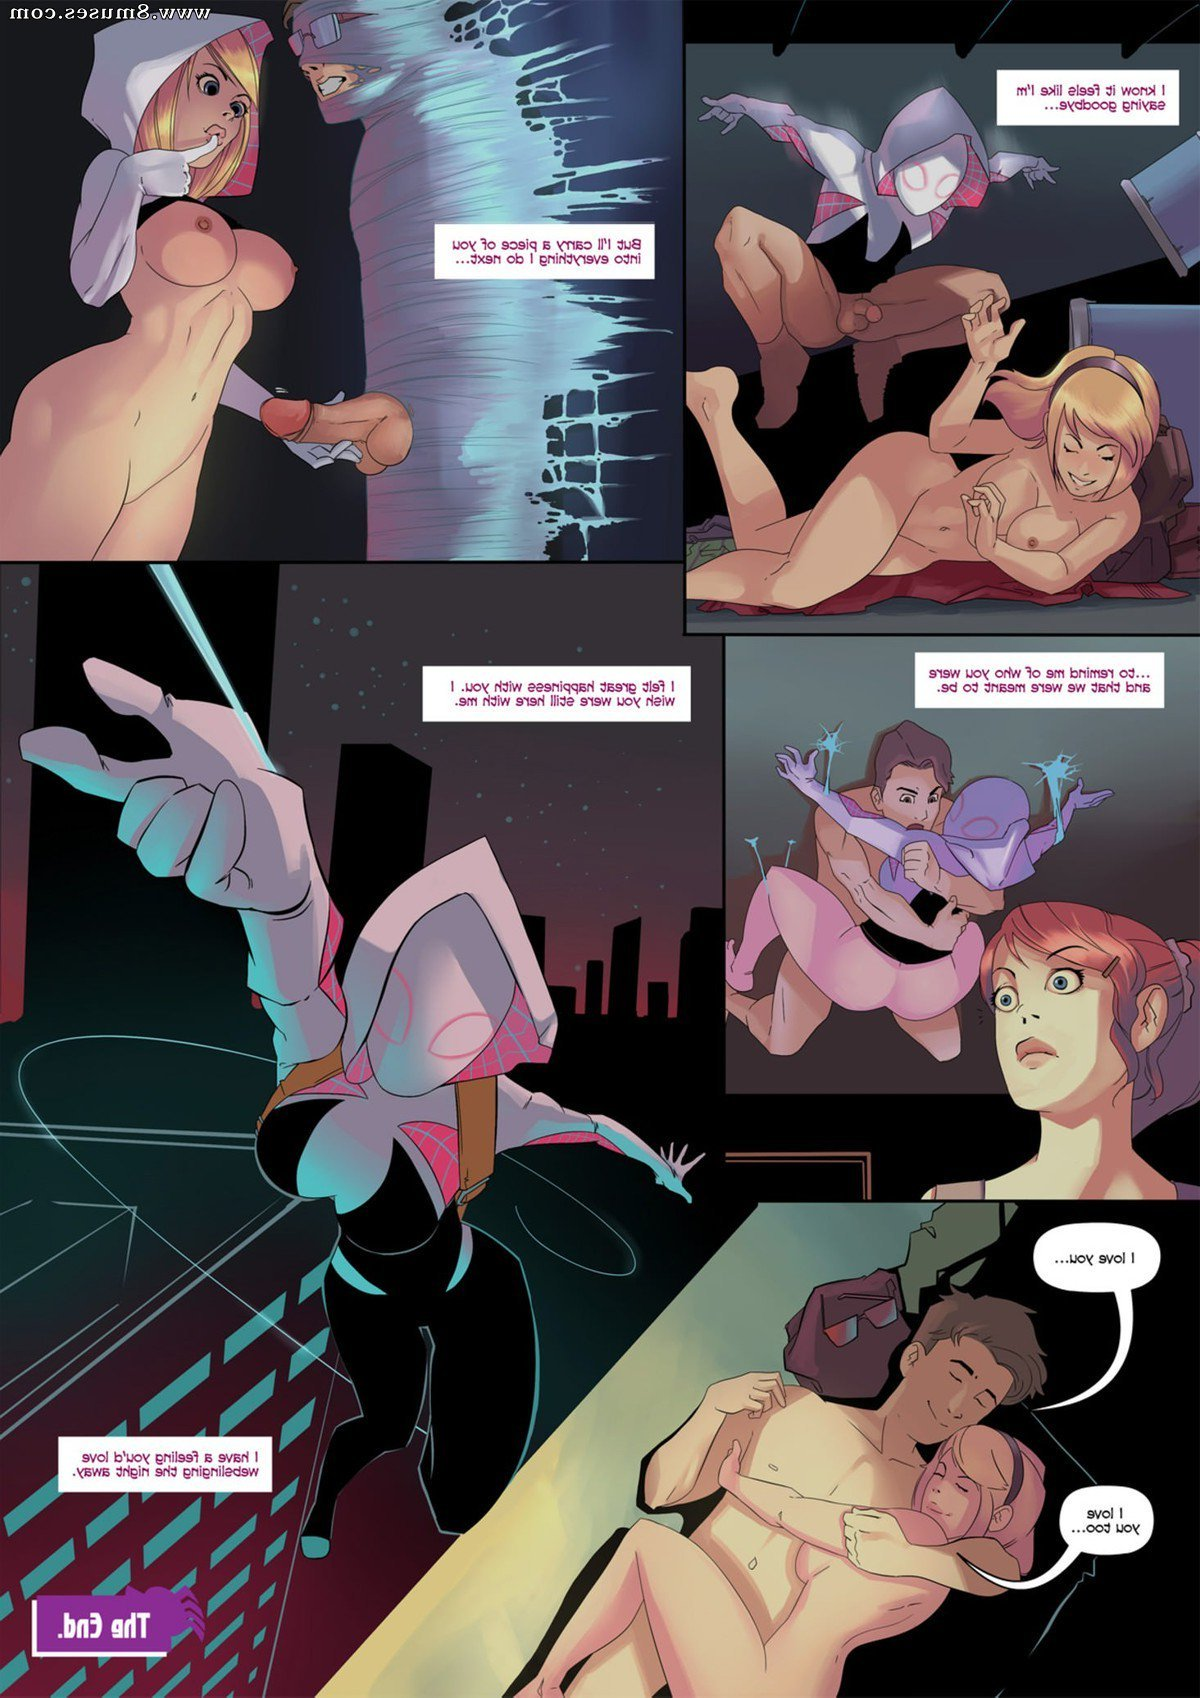 Tracy-Scops-Comics/SpiderGwen/Issue-1 SpiderGwen_-_Issue_1_10.jpg